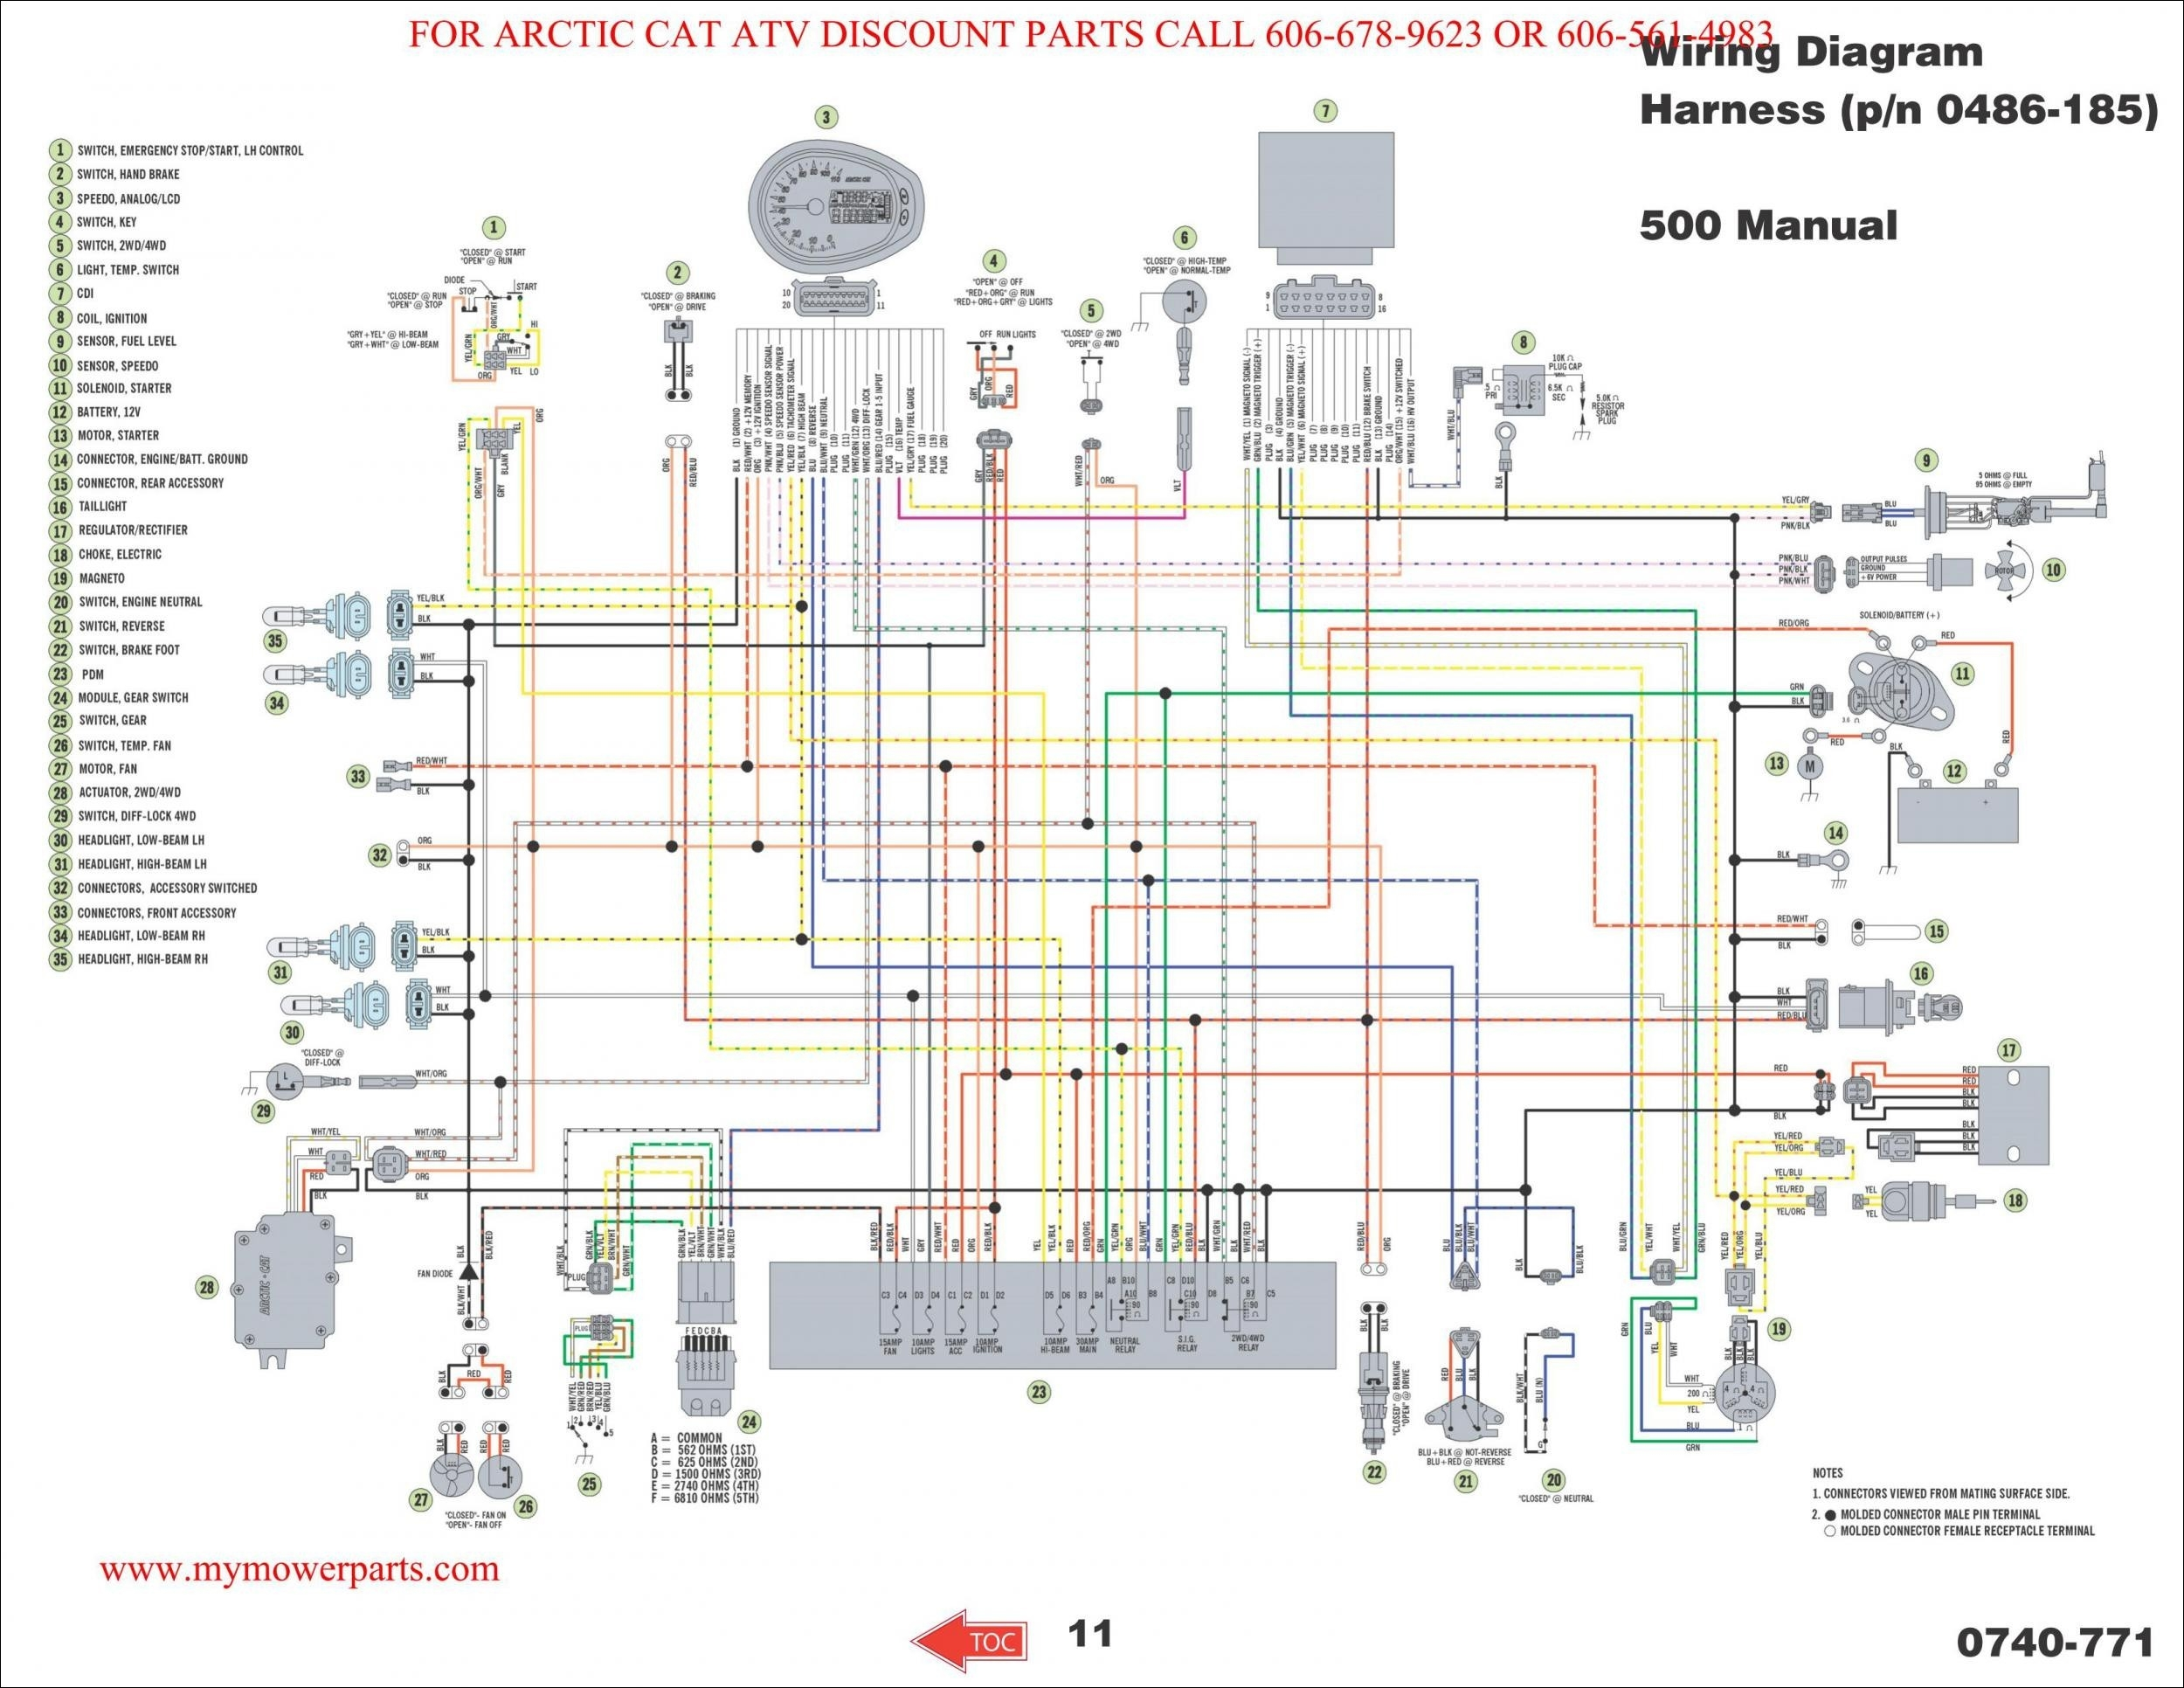 2004 polaris ranger 500 wiring diagram Download-2001 polaris ranger solenoid wiring diagram trusted wiring diagrams u2022 rh 66 42 81 37 Polaris Ranger 500 Wiring Diagram wiring diagram for 2004 polaris 16-o